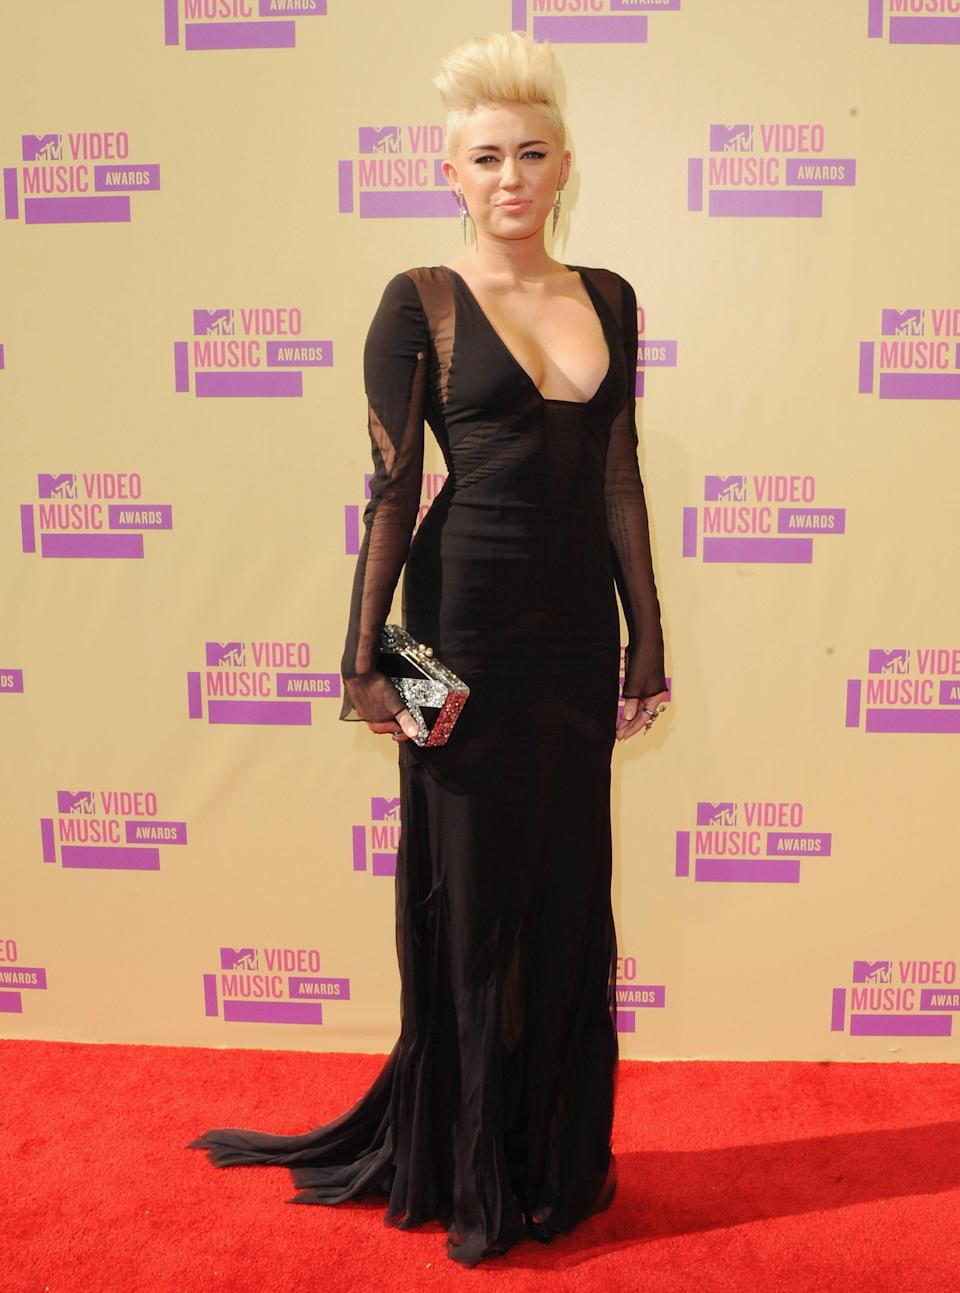 Miley Cyrus slipped on one of her most elegant looks ever in Emilio Pucci, accented with a platinum blonde mohawk.